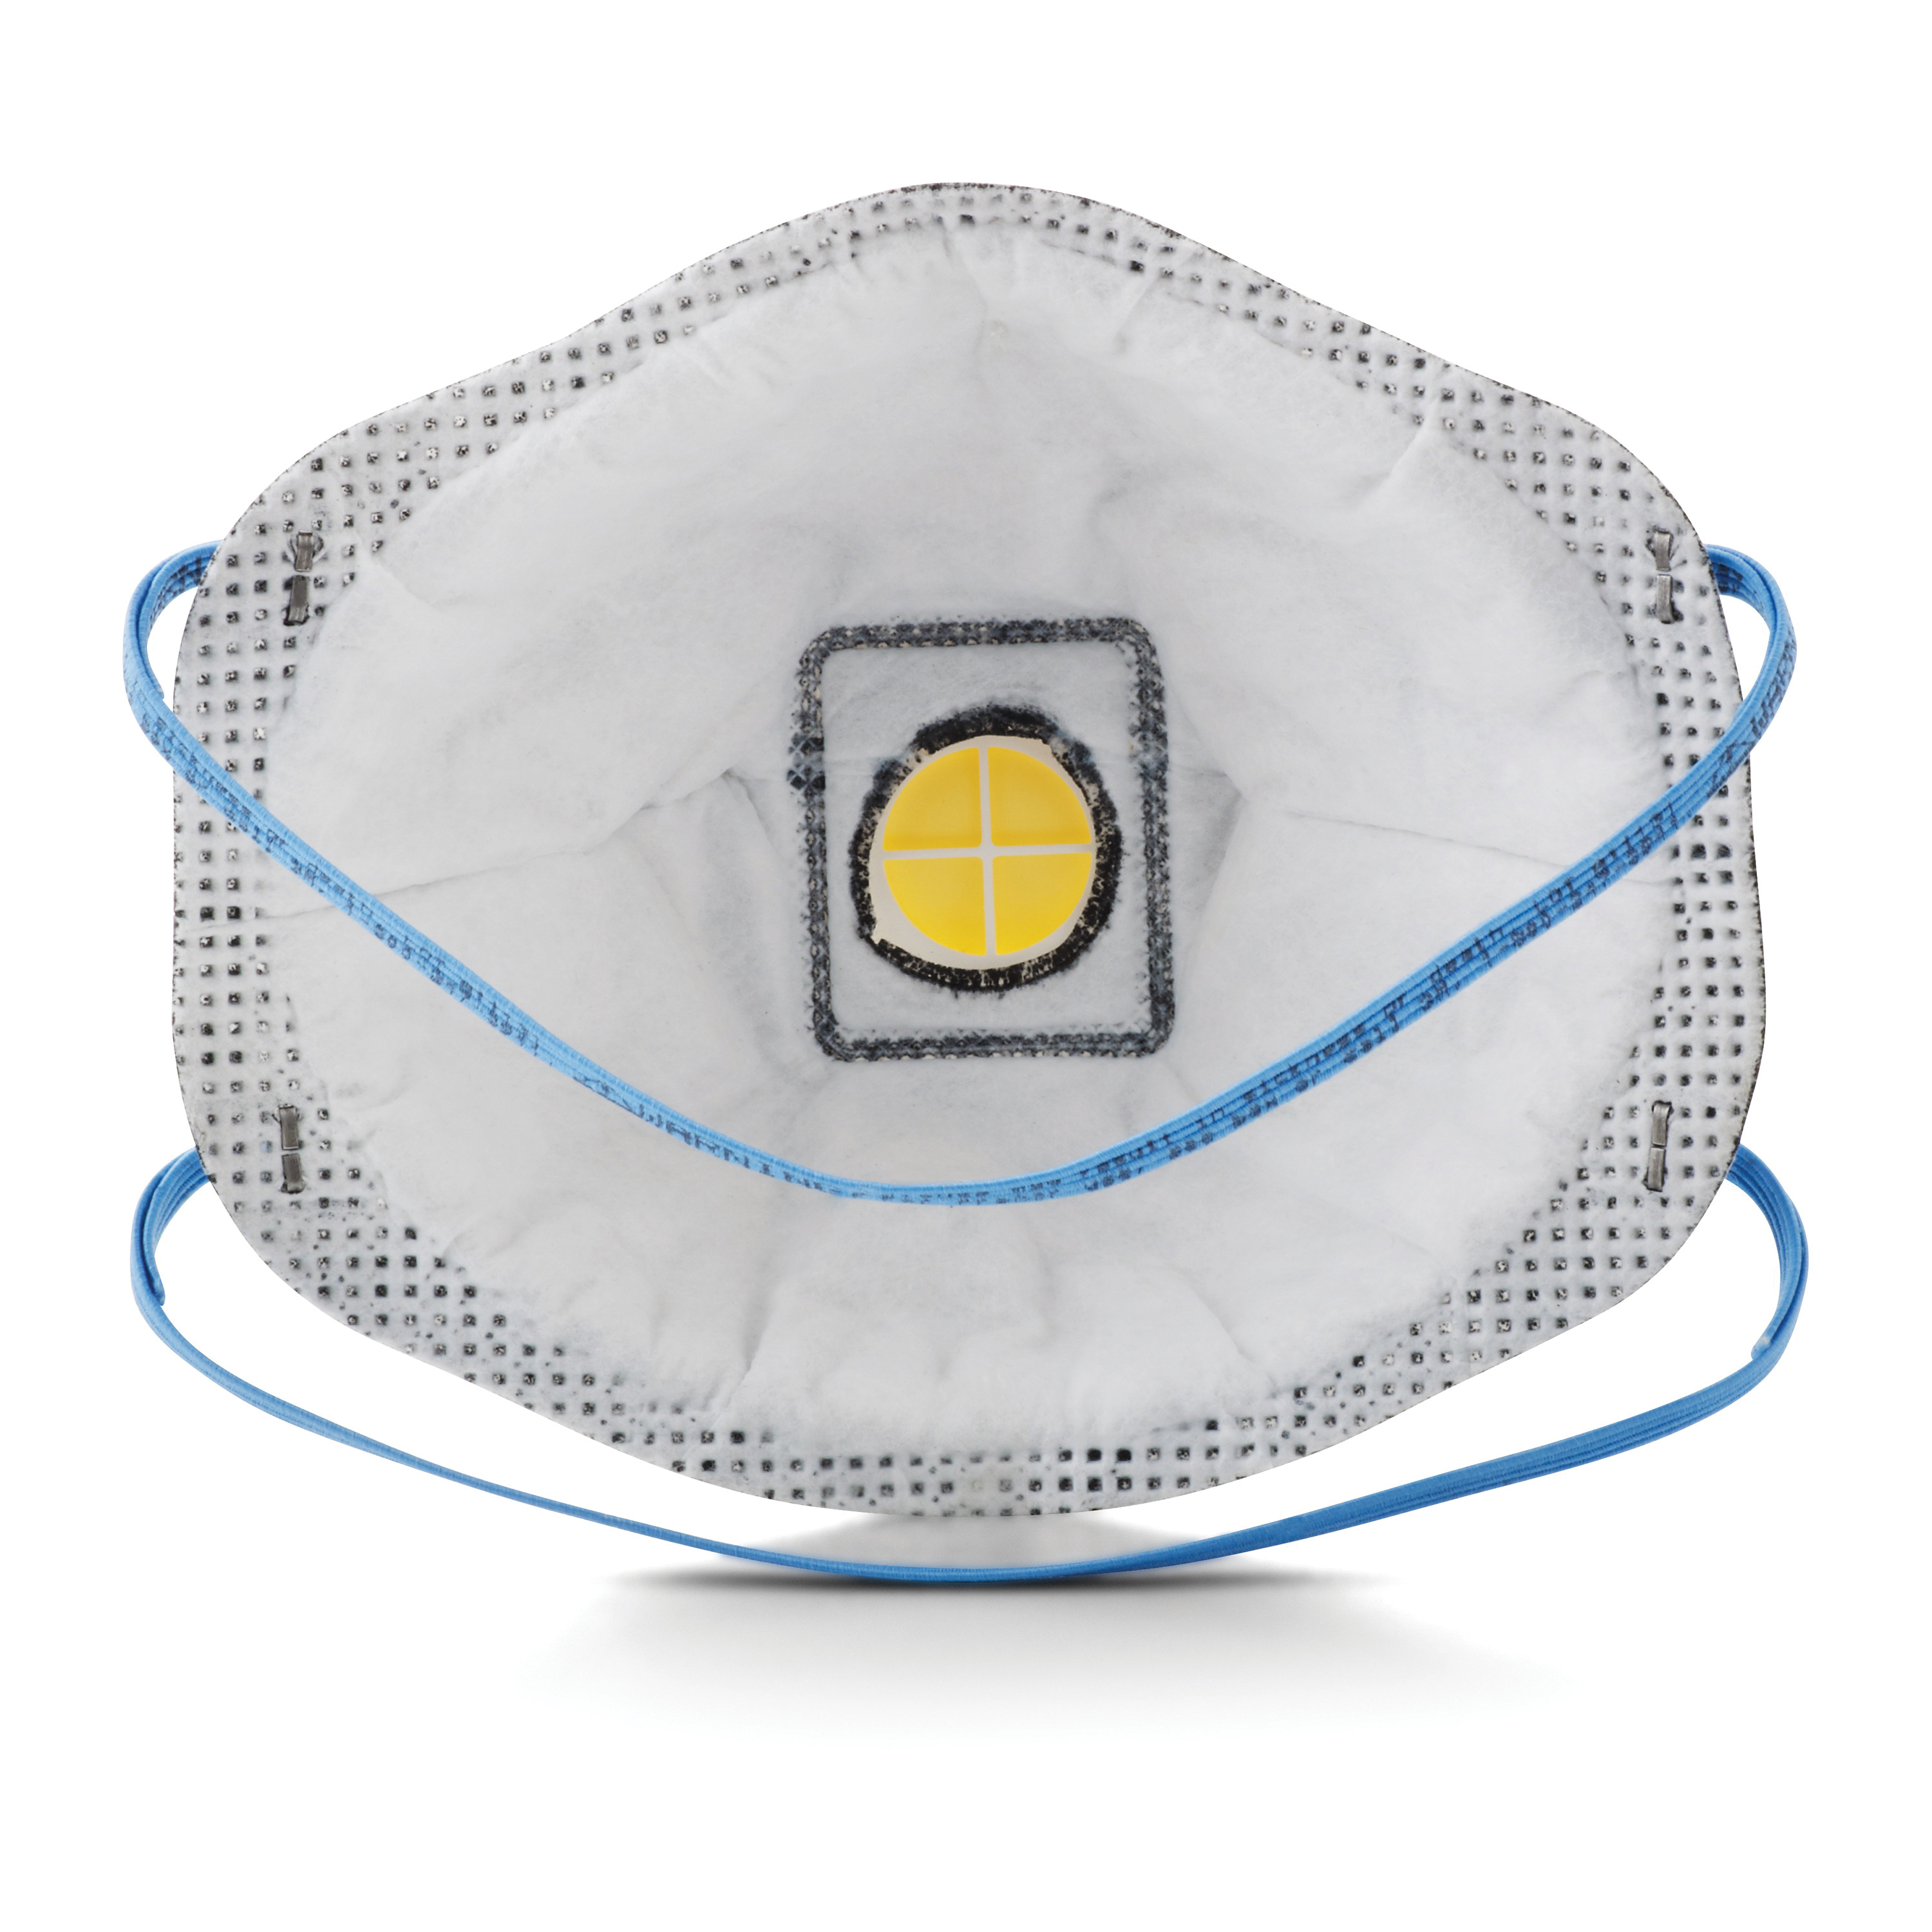 3M™ 051138-54370 Cup Style Disposable Particulate Respirator With Cool Flow™ Exhalation Valve and Adjustable M-Nose Clip, Standard, Resists: Certain Oil and Non-Oil Based Particles